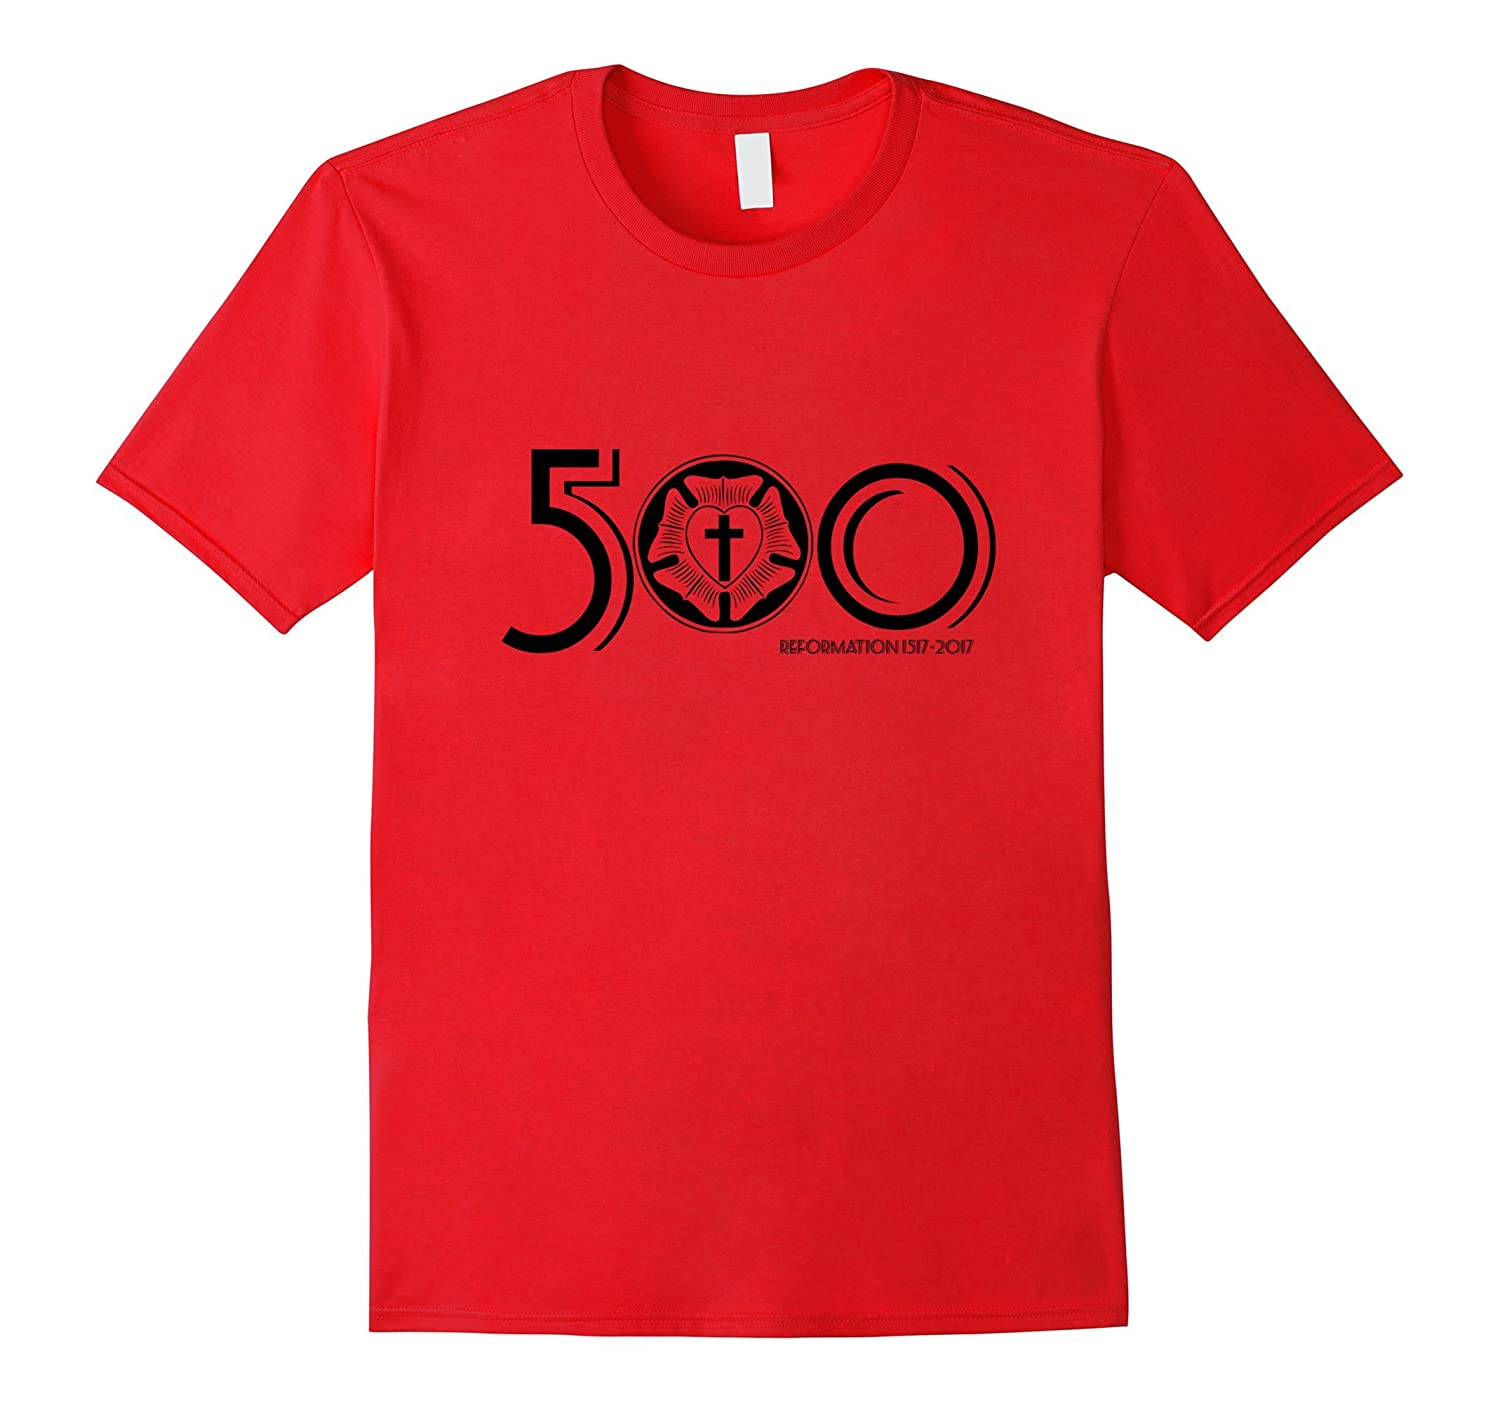 500 Years October 31, 2017 Reformation Day t shirt-Rose